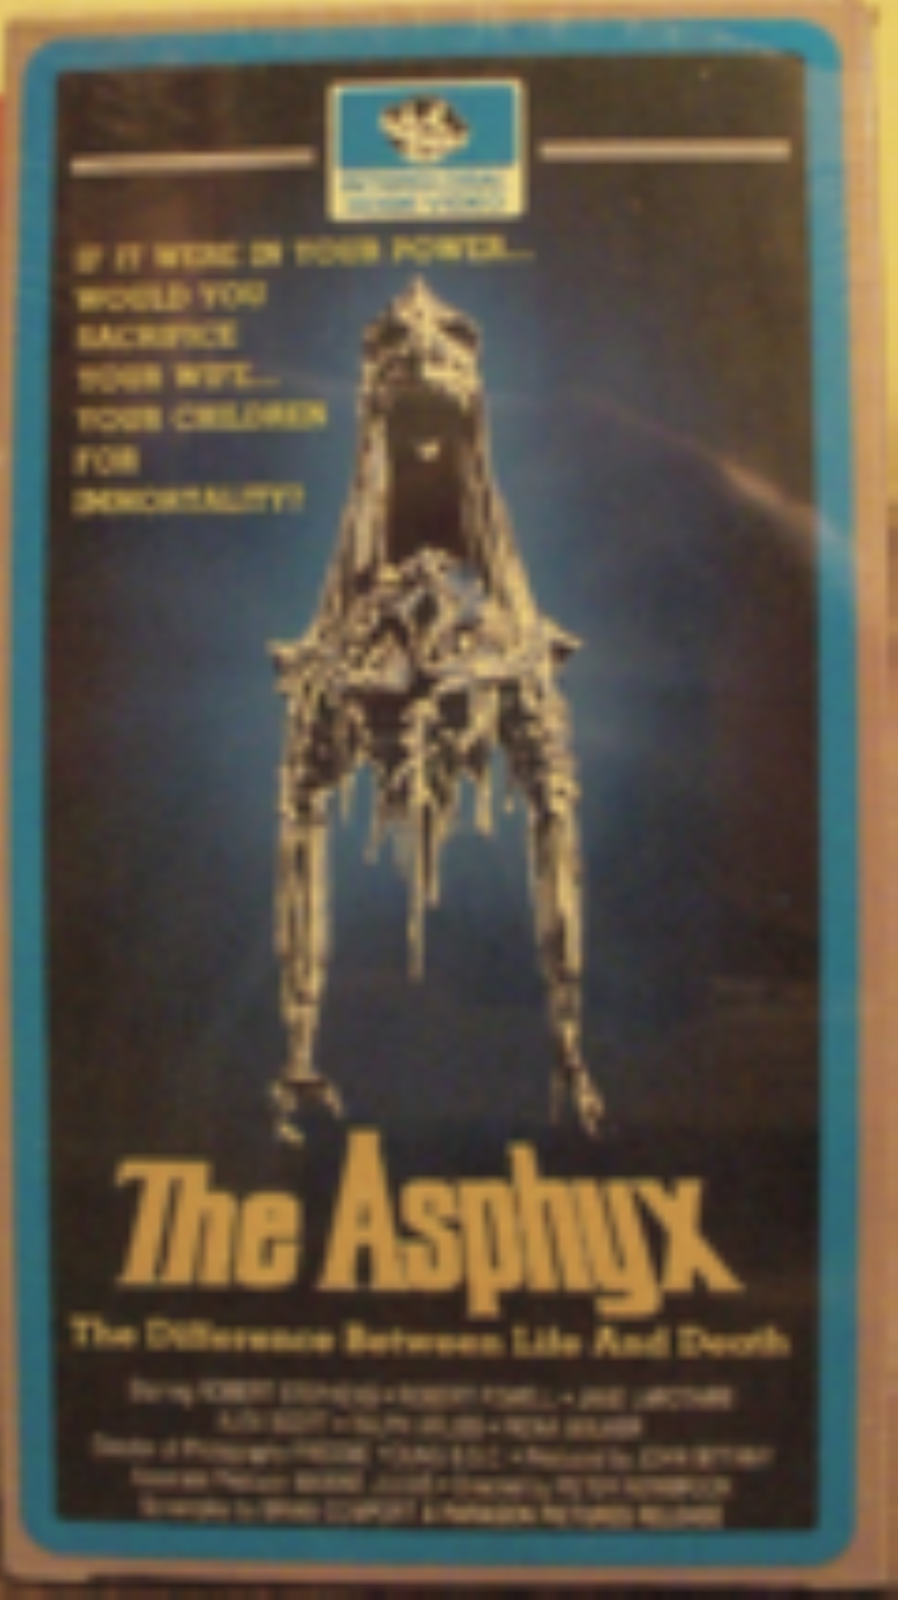 The Asphyx Vhs